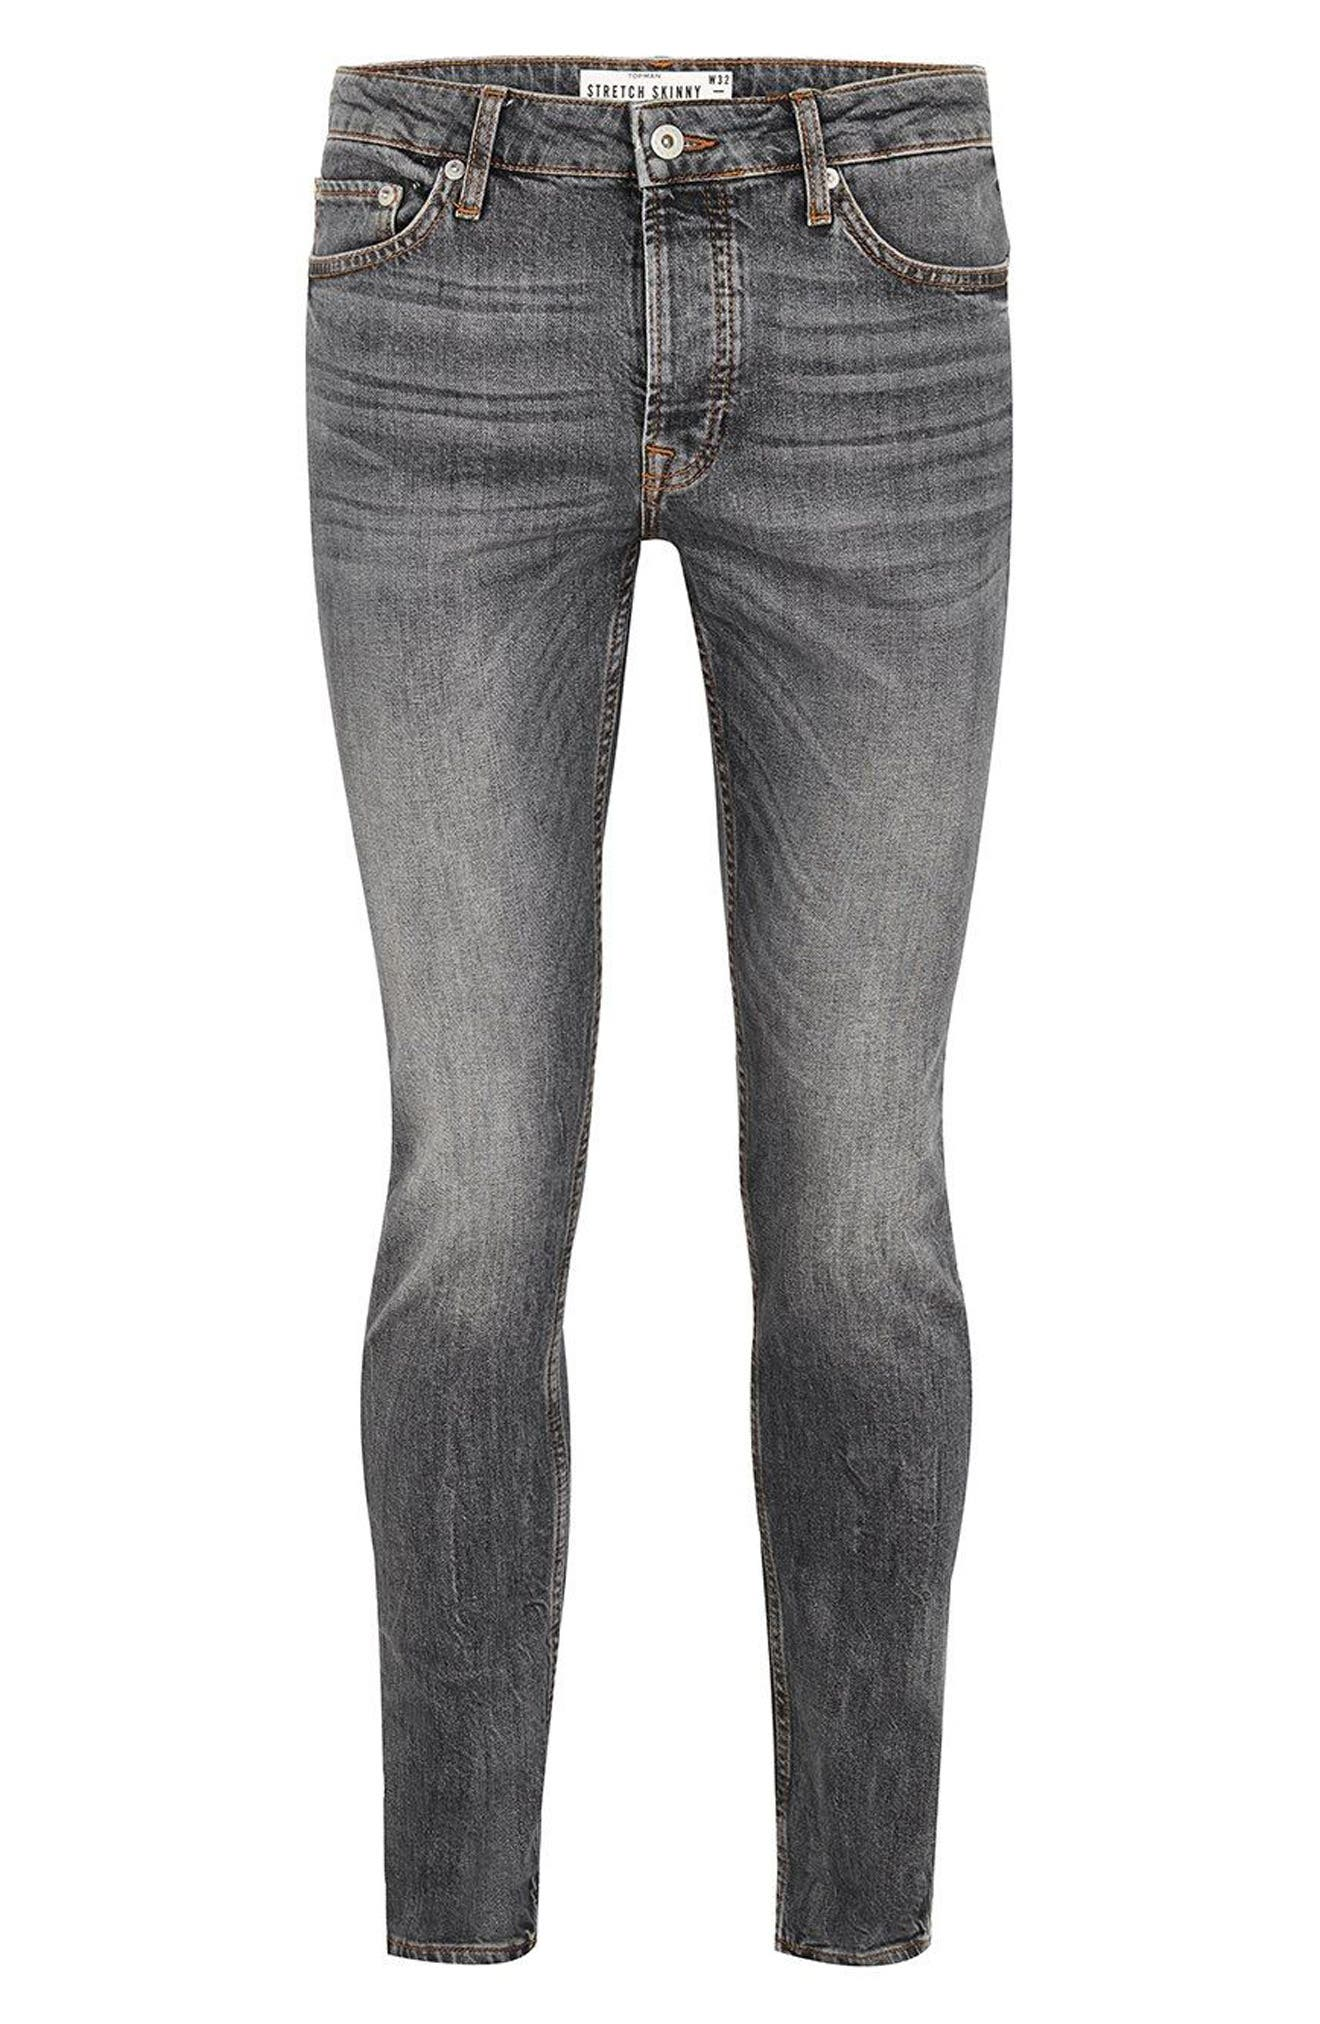 Stretch Skinny Fit Jeans,                             Alternate thumbnail 4, color,                             020